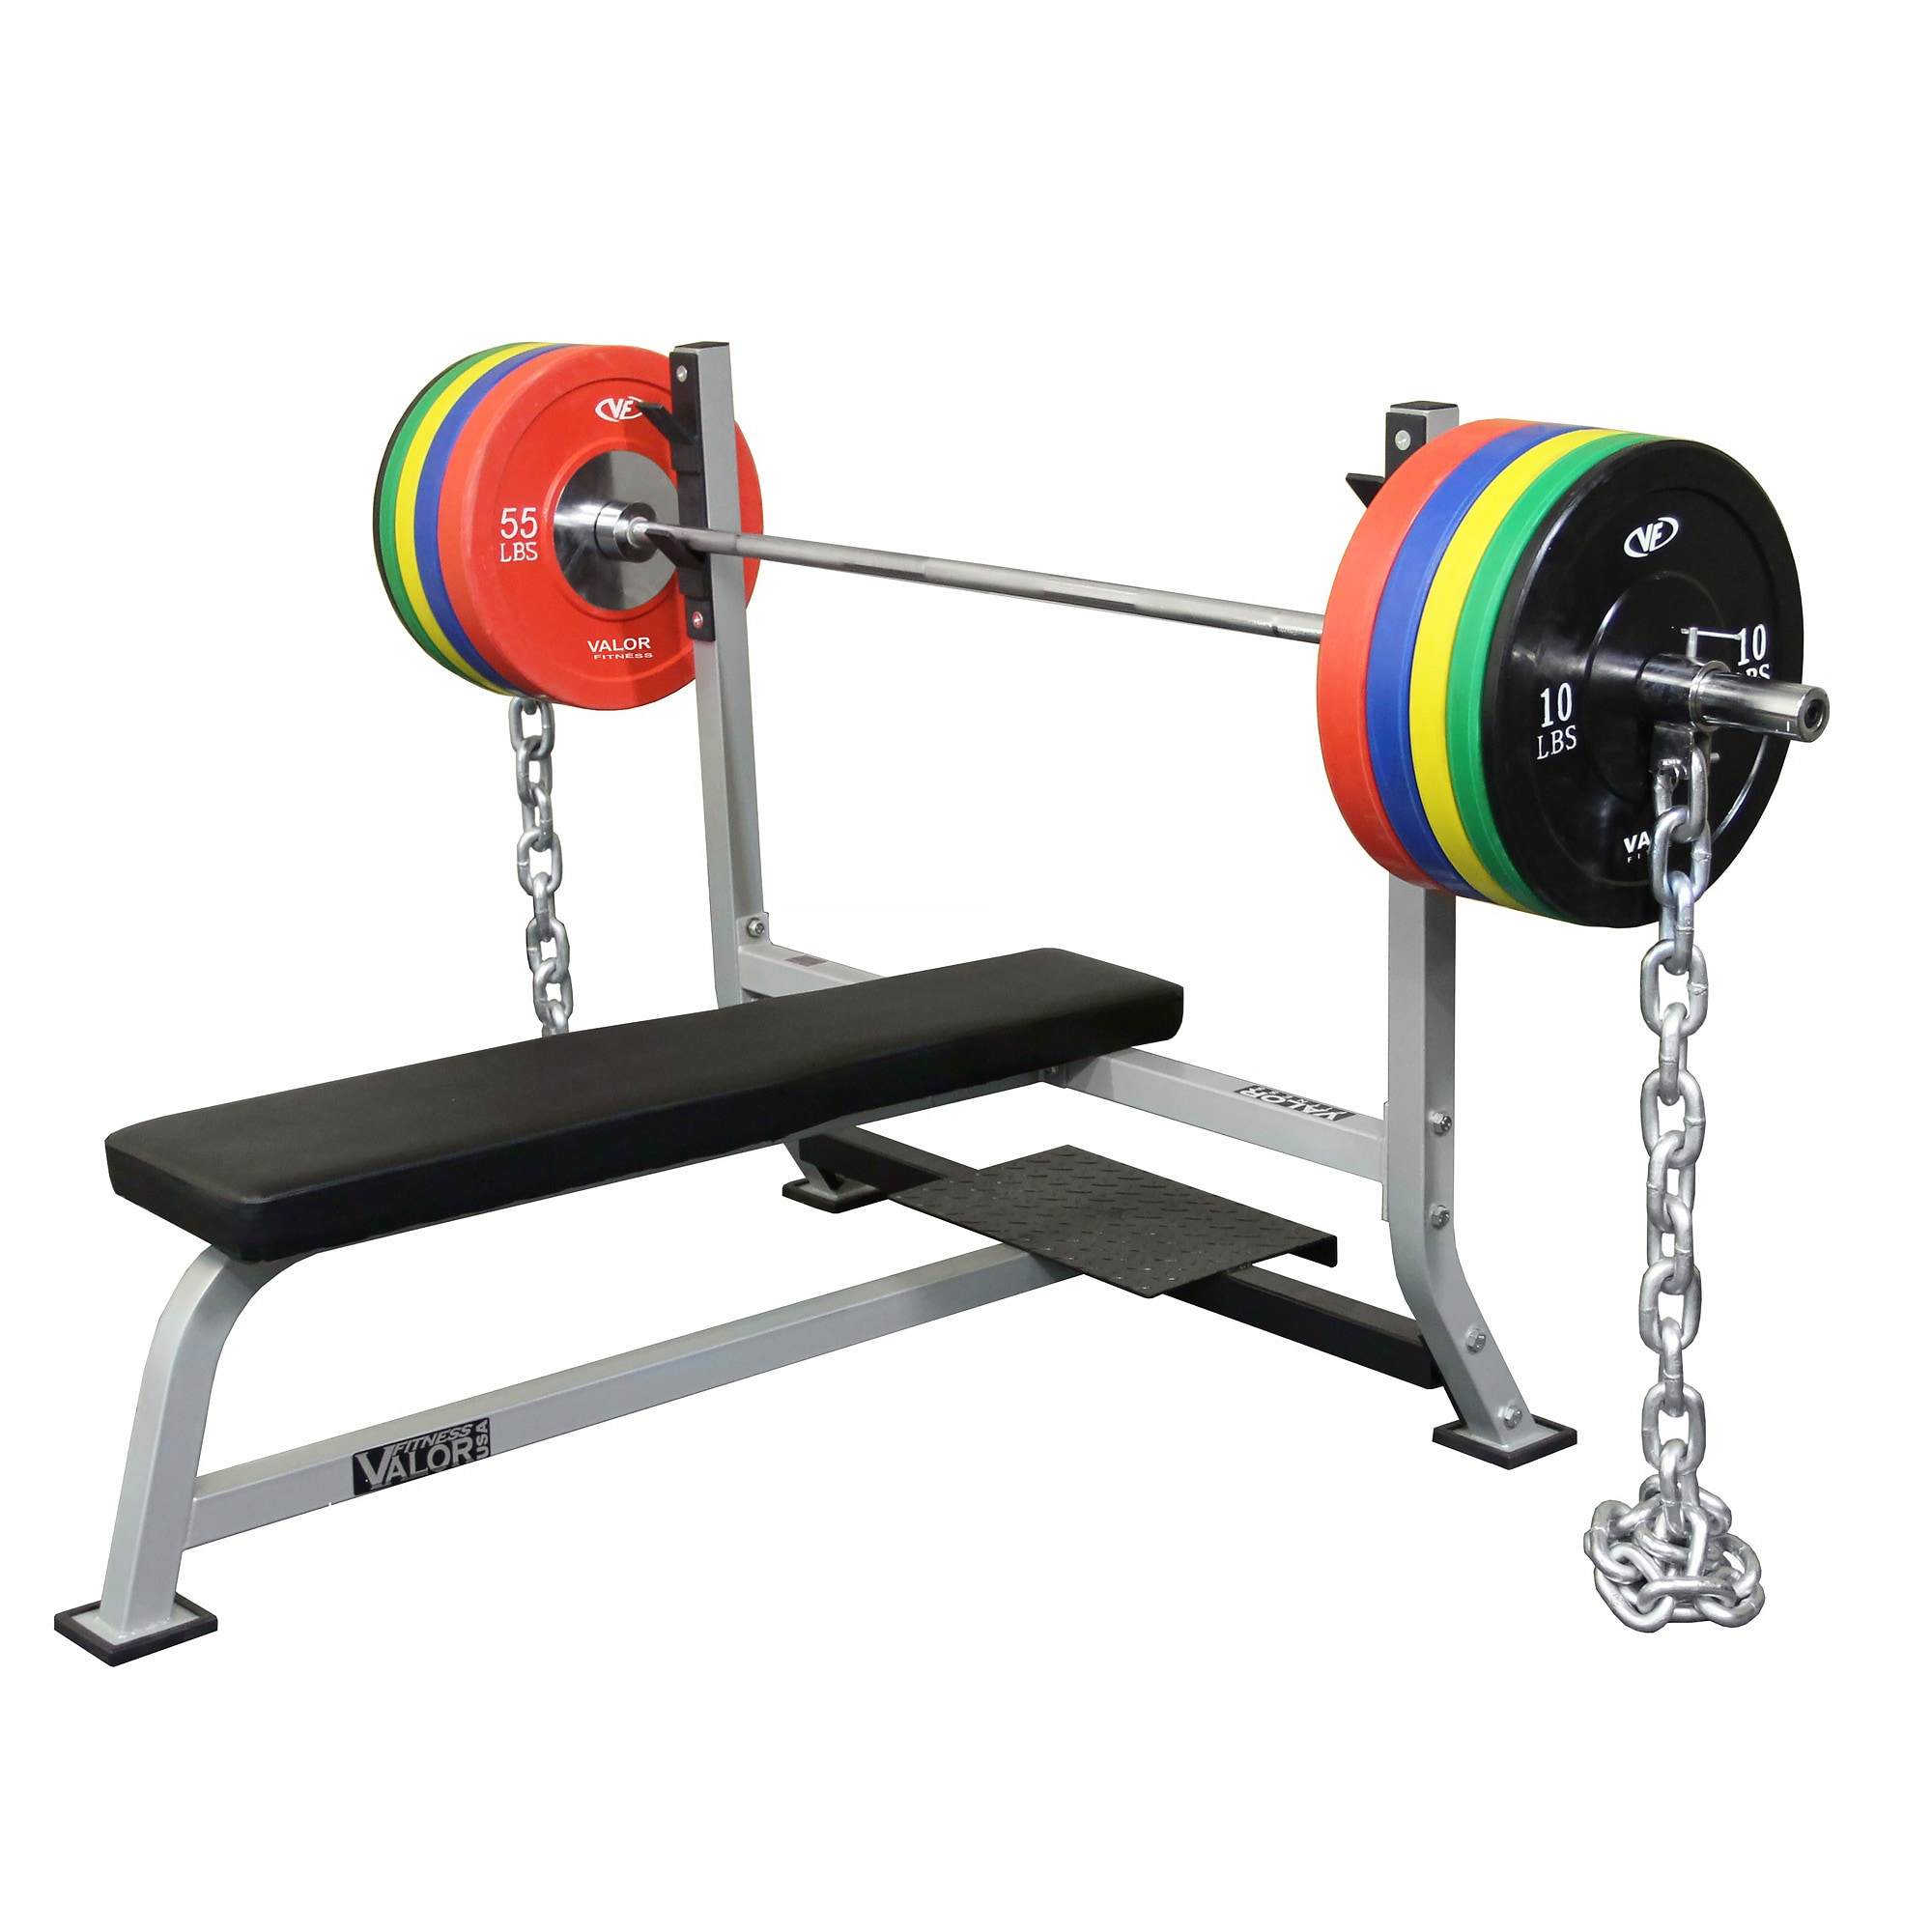 press with pro weider set weight bench olympic b master product cfm hayneedle